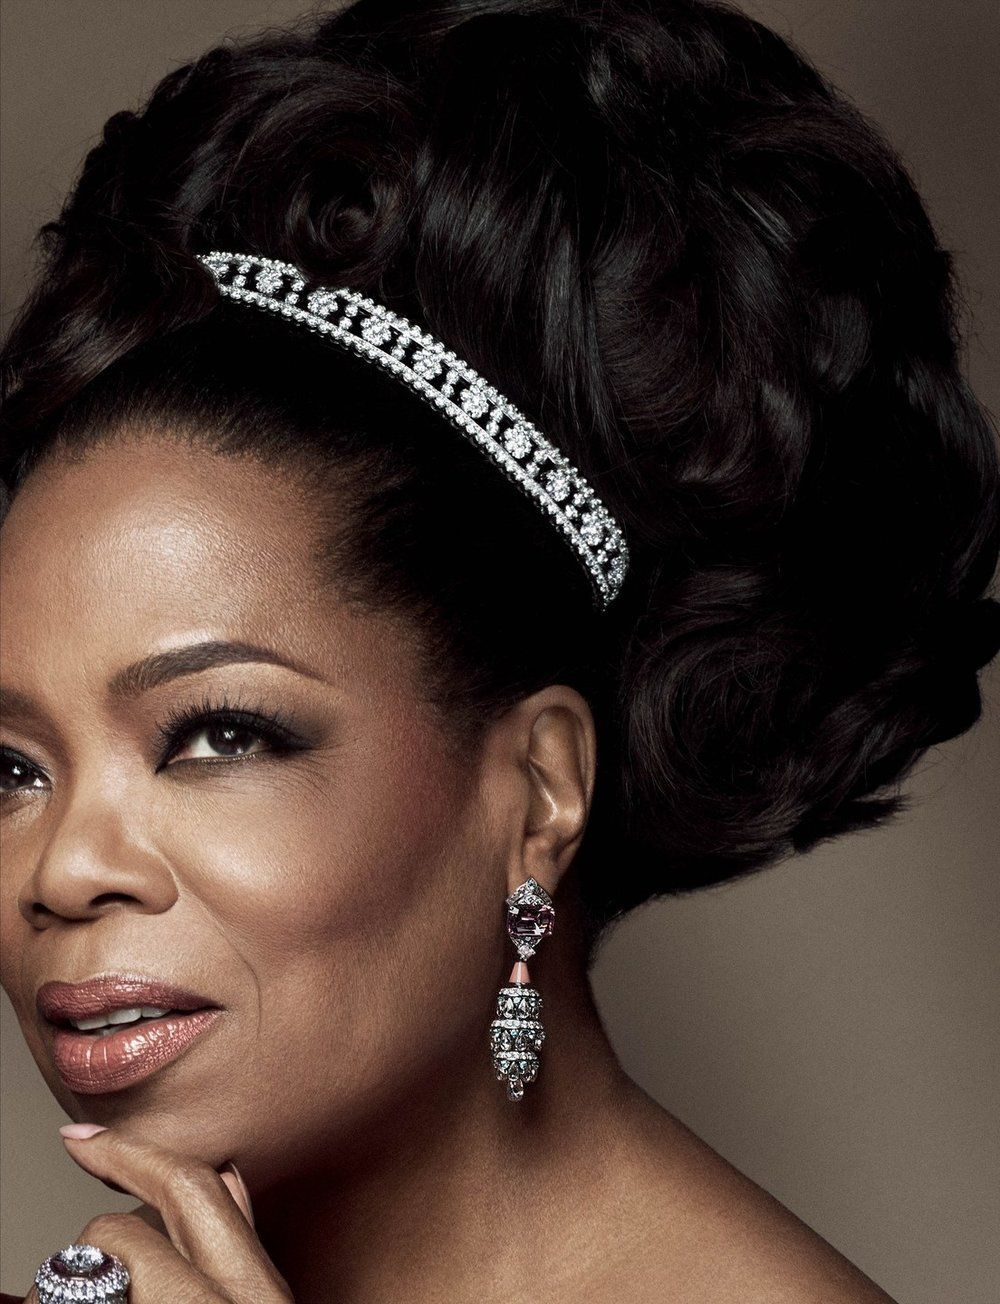 Oprah winfrey british vogue august wearing a diamond bracelet